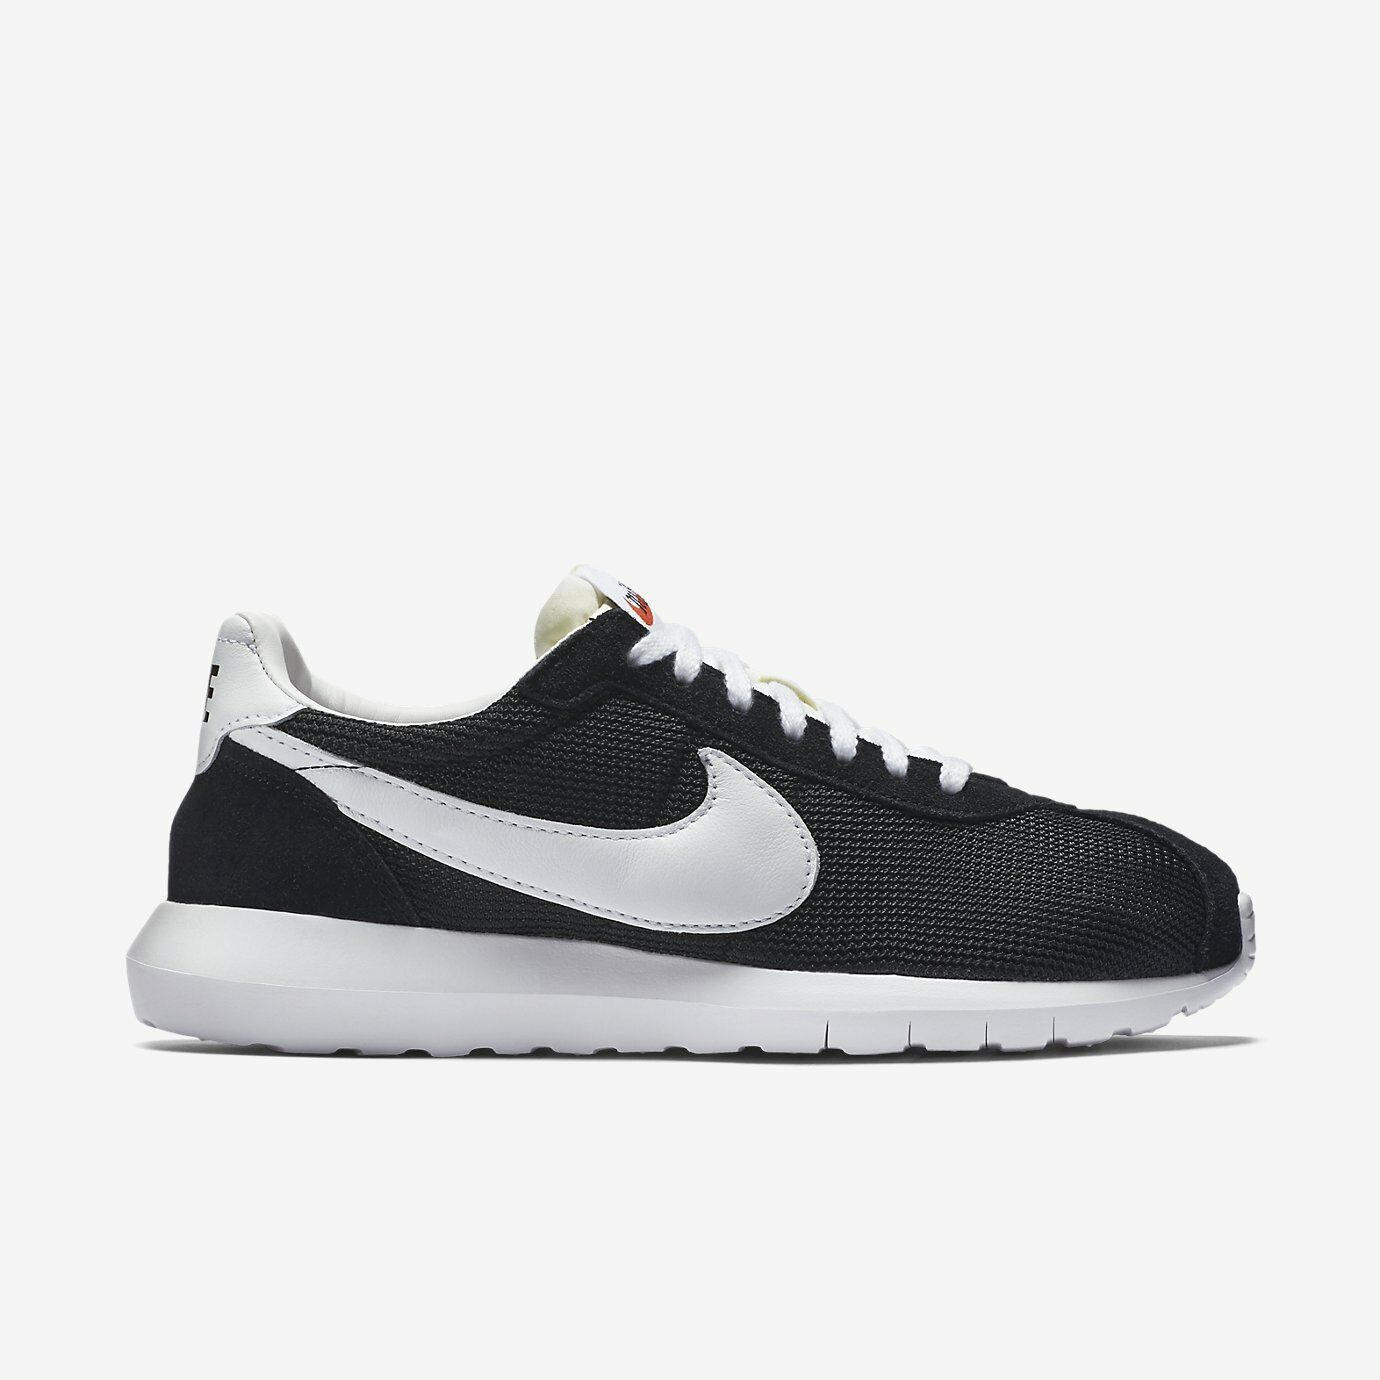 New Men's Nike Roshe ND-1000 Shoes (802022-001)  Men US 11 / Eur 45